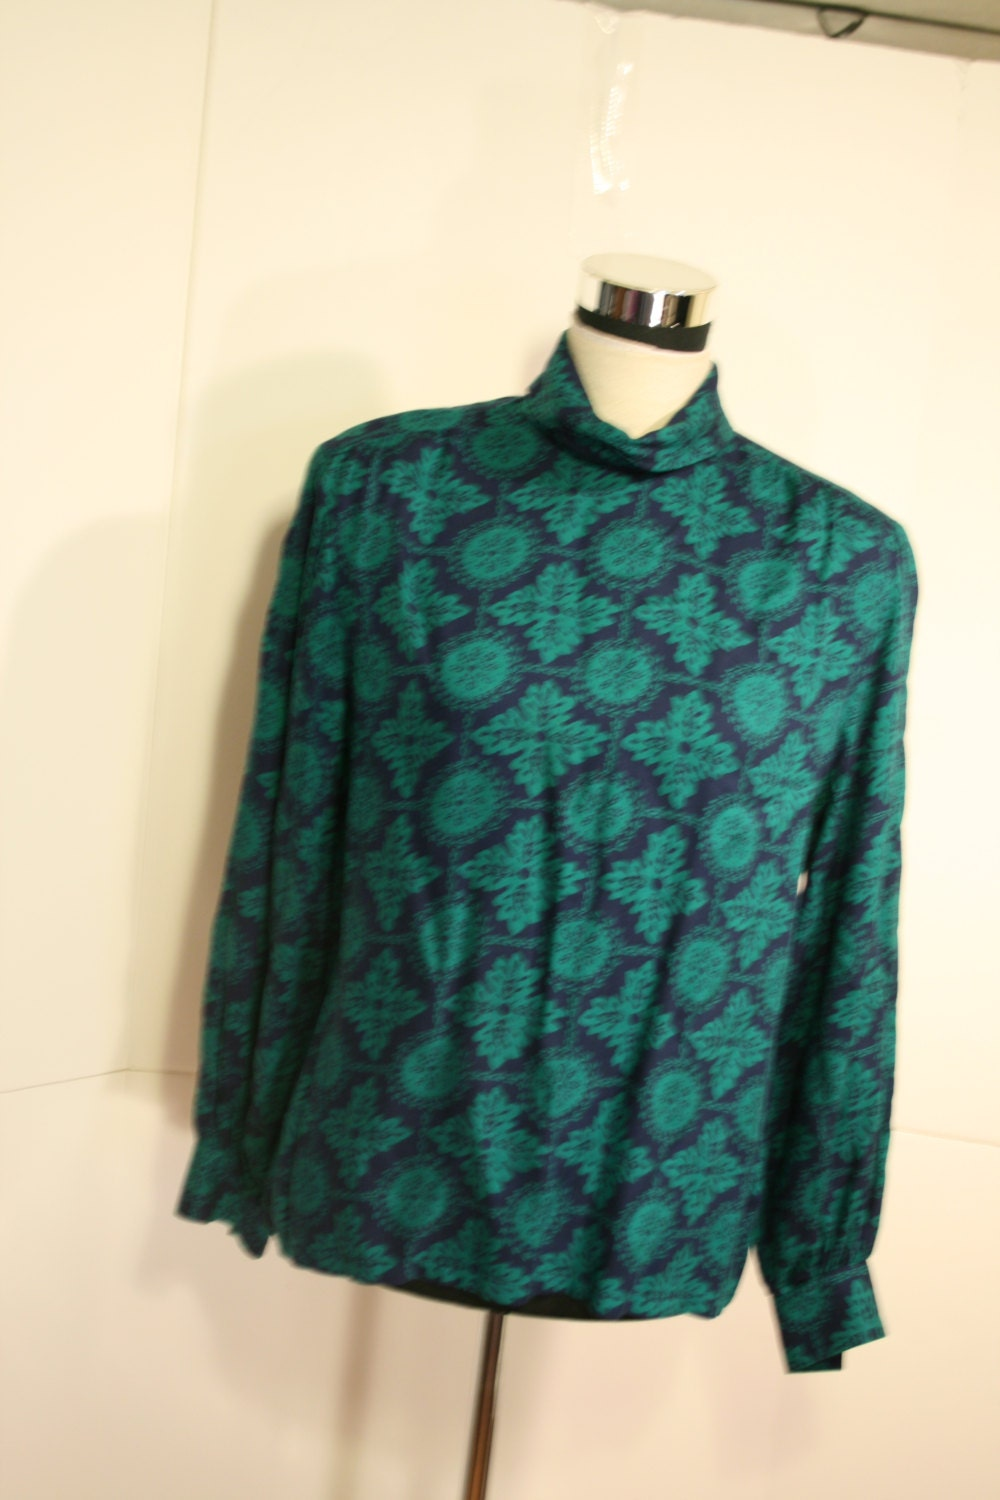 Pendleton Country Sophisticates Skirt & Blouse size 14 Green Blue floral print - GrammyKayFinds